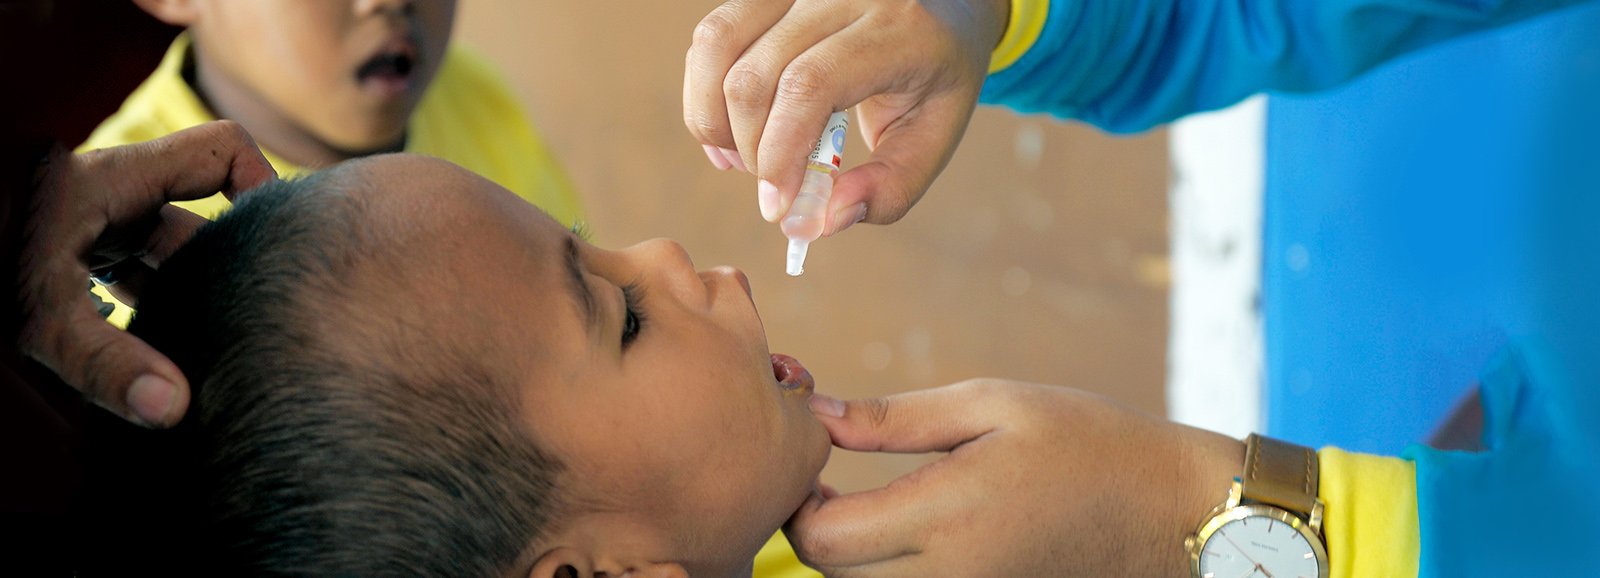 A child receiving oral polio drops (Image © Pacific Press/Getty Images)